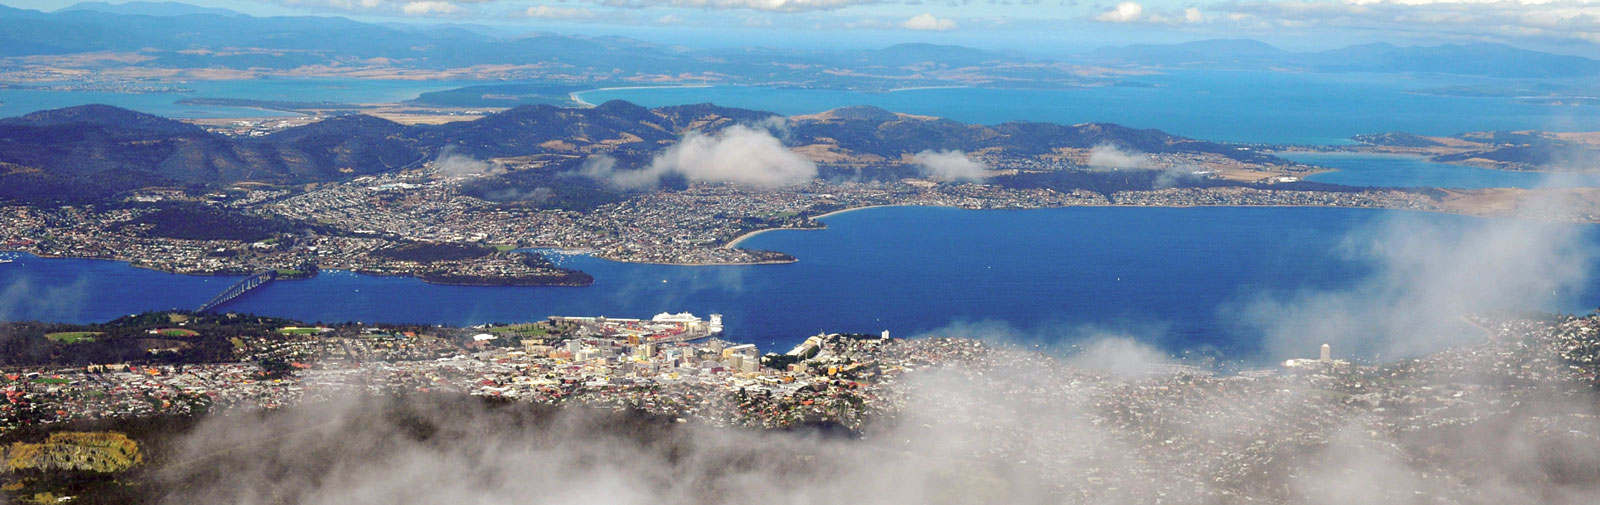 Hobart Tasmania from the sky